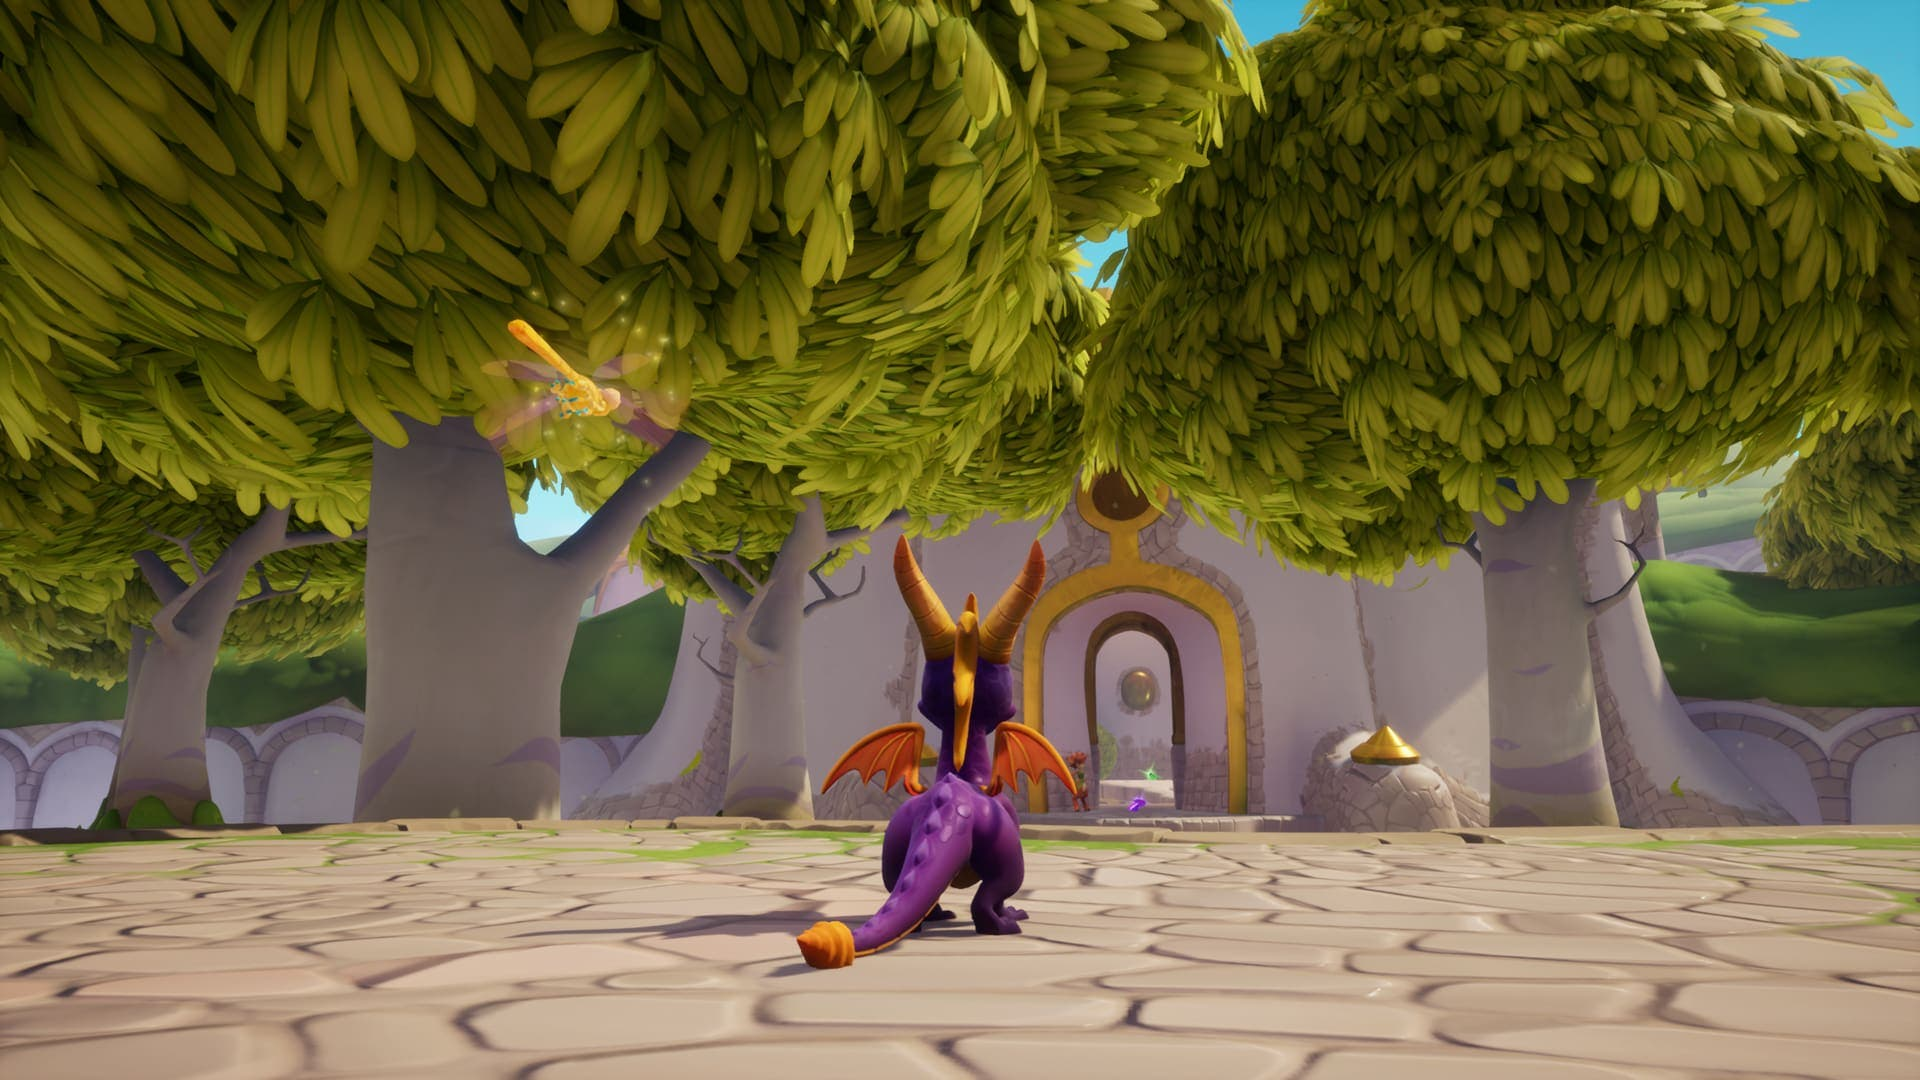 Análisis de Spyro Reignited Trilogy - Xbox One 7